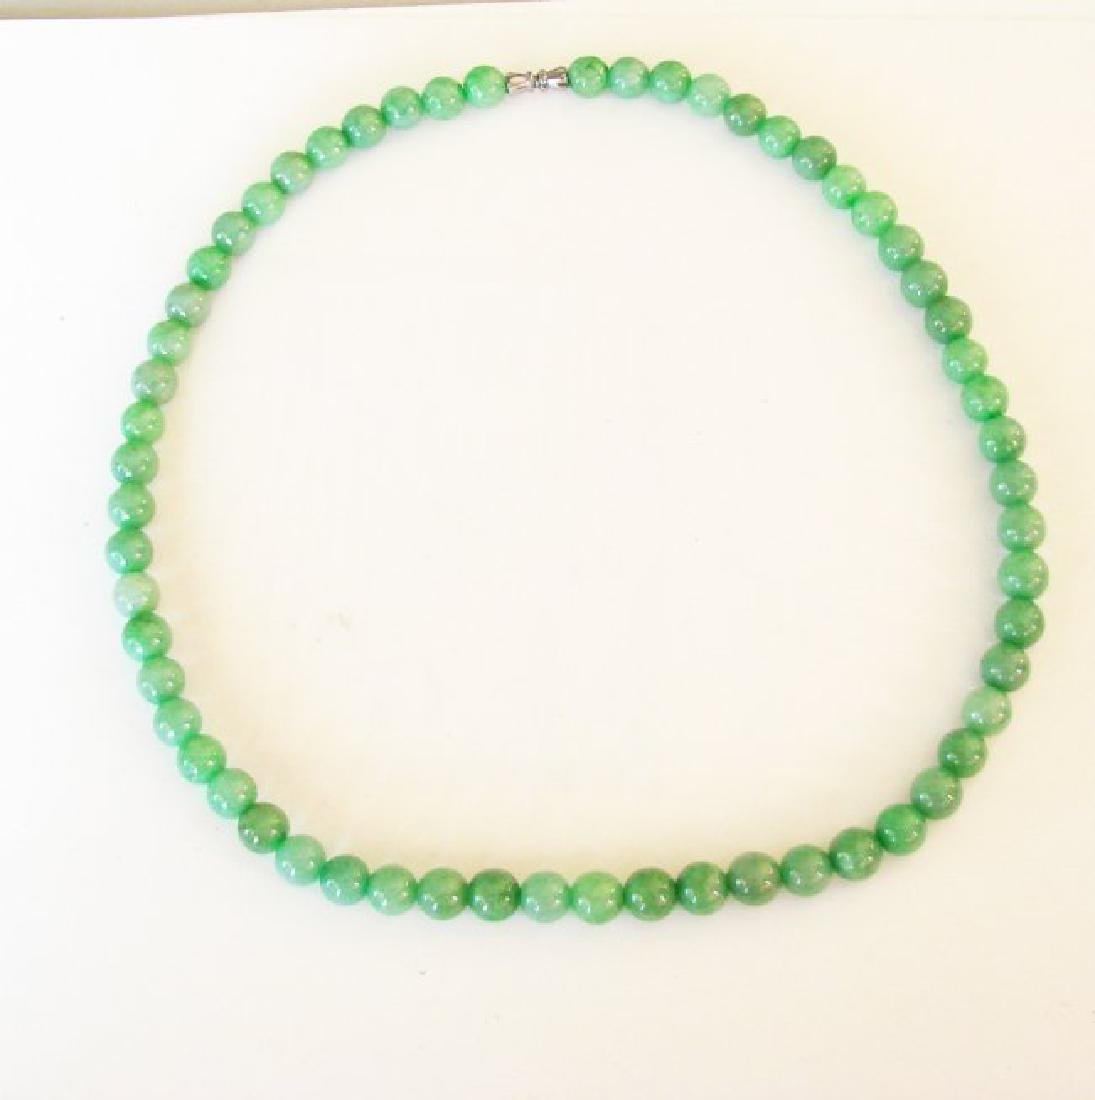 Natural Jade Beads Necklace Size 9 mm - 3